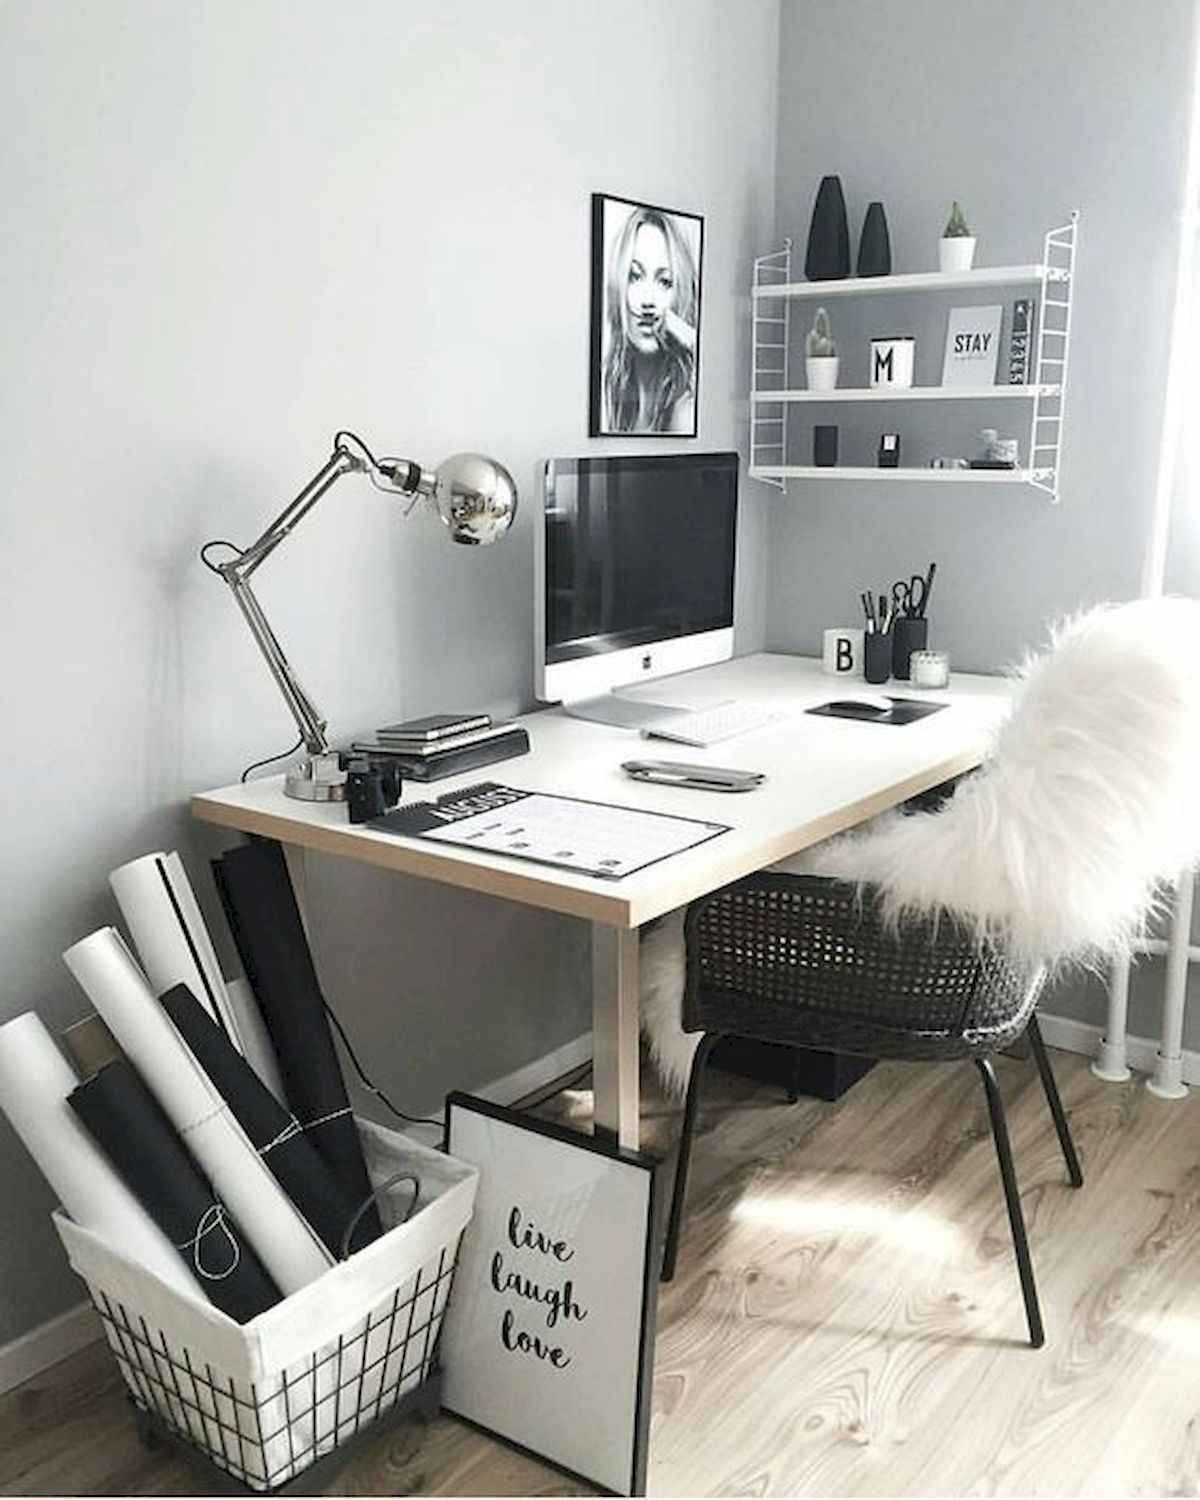 55 Brilliant Workspace Desk Design Ideas On A Budget 27 Room